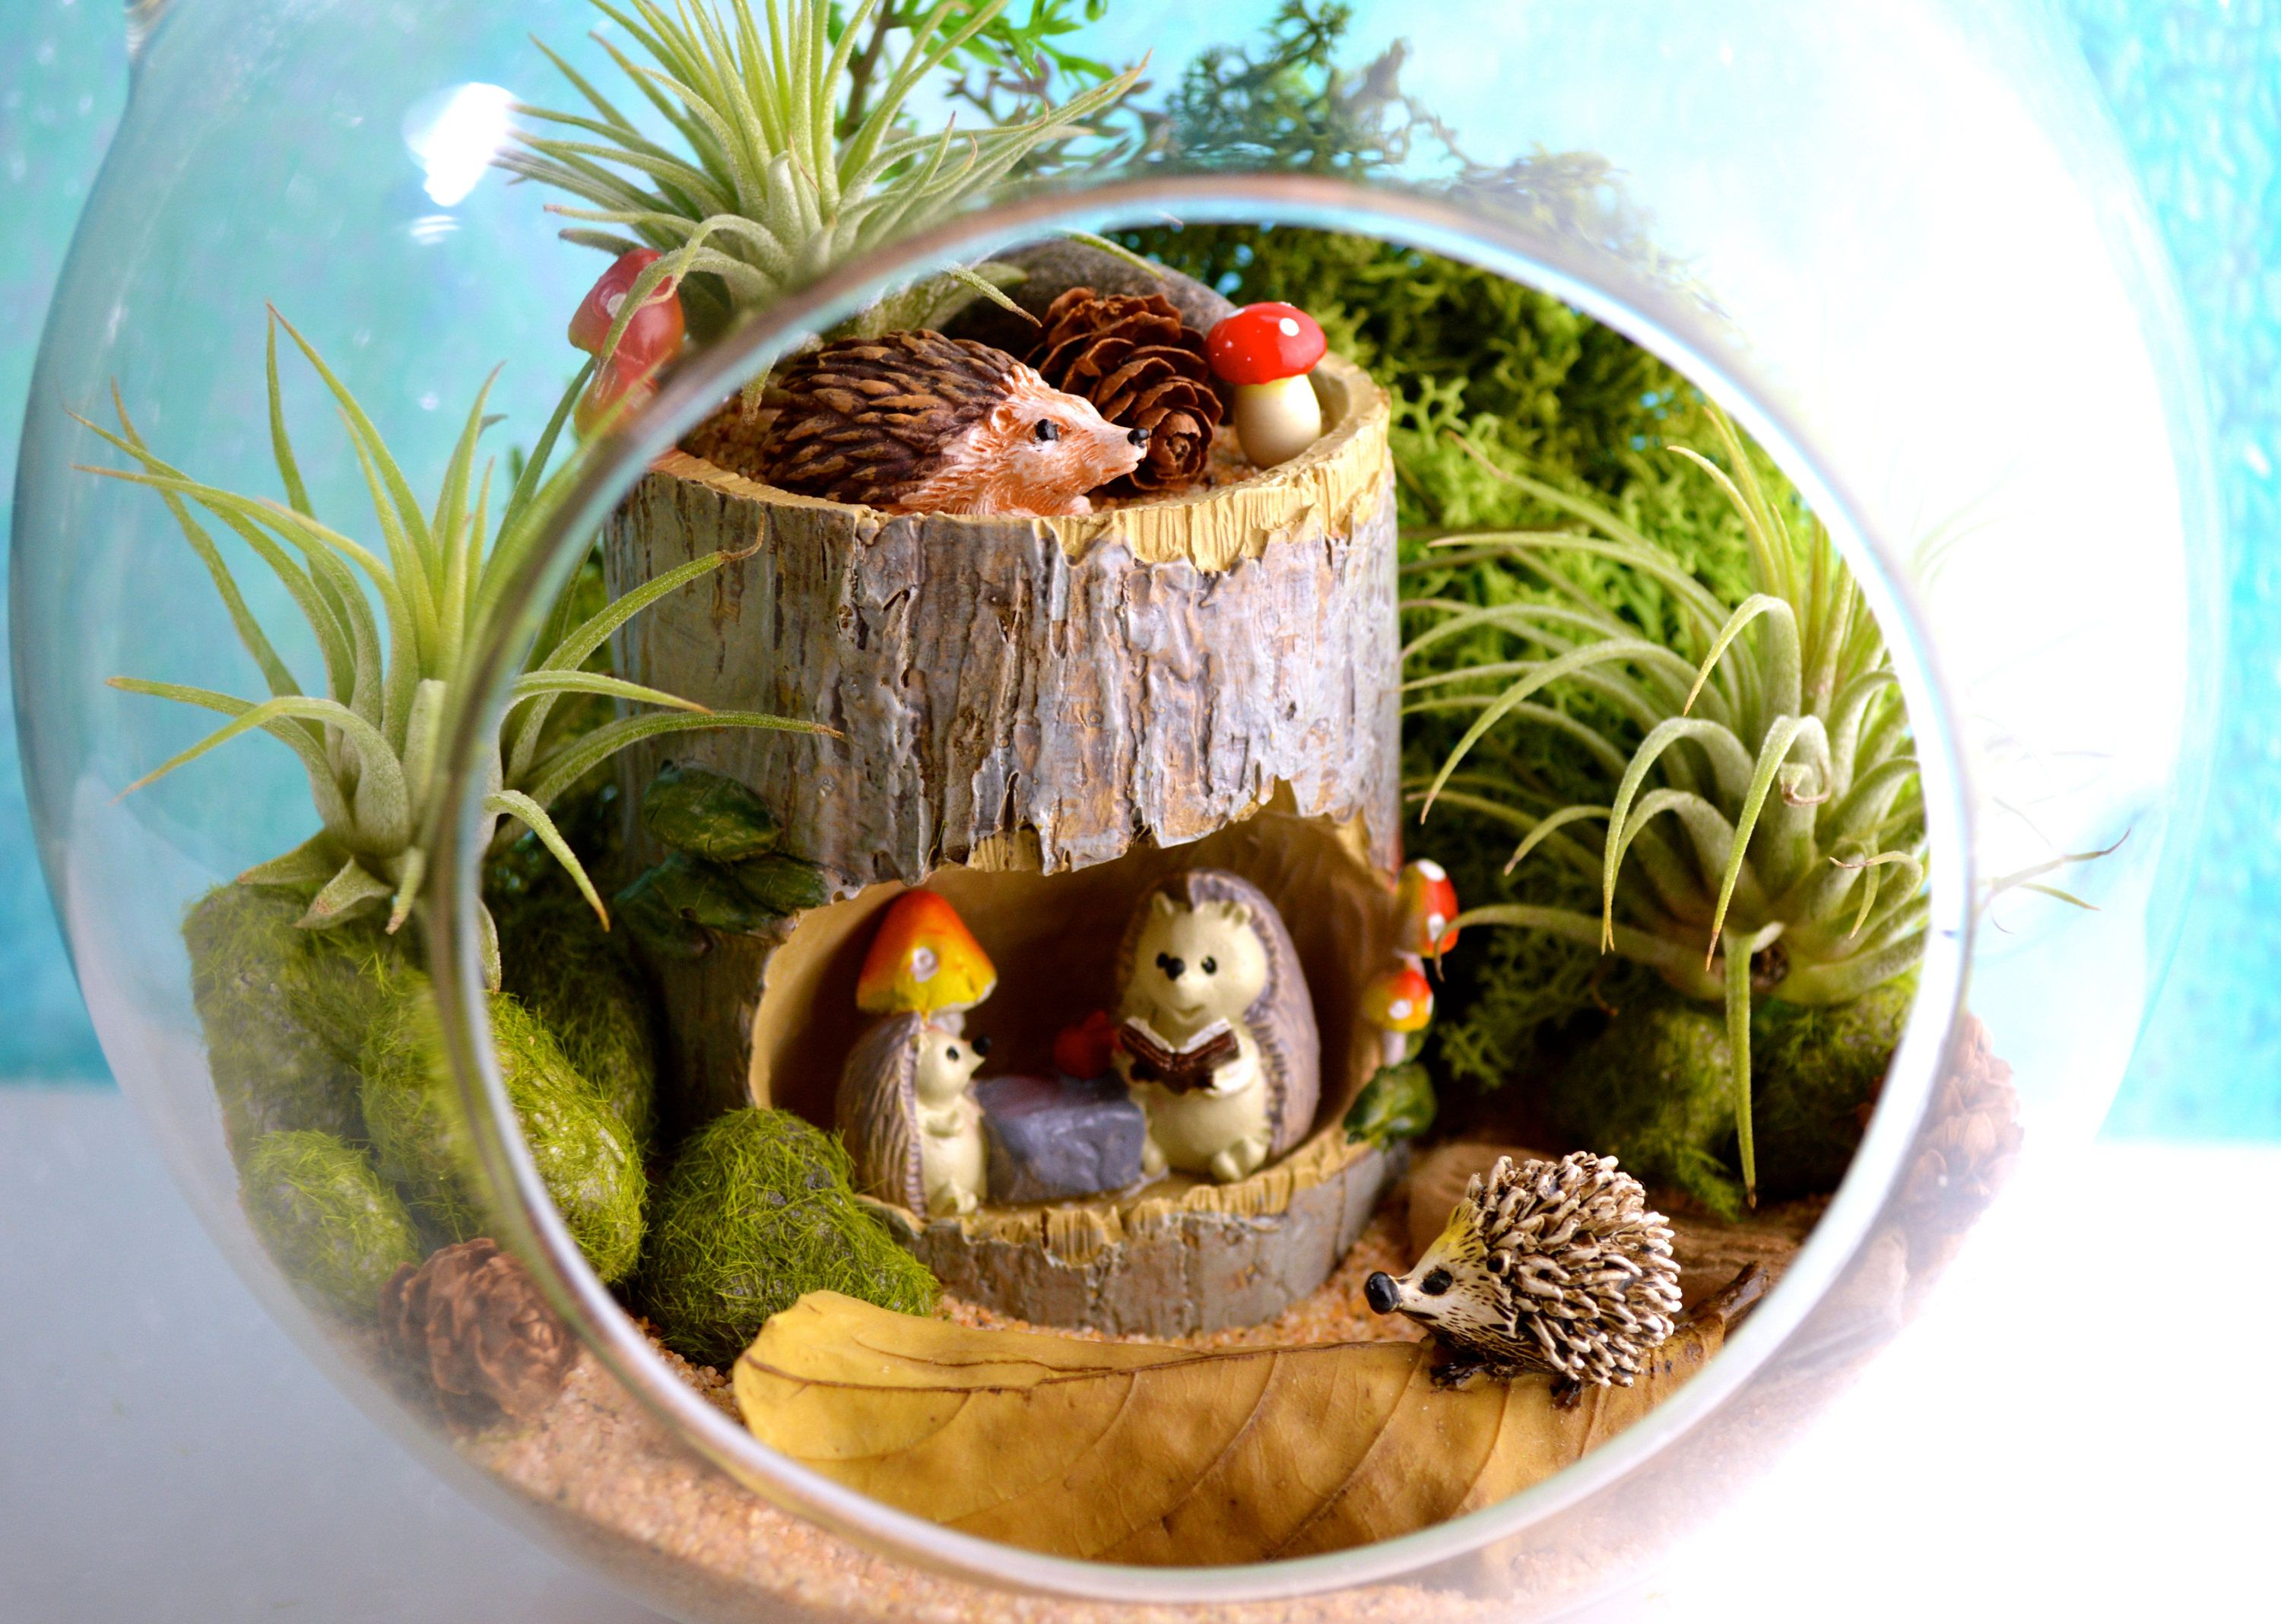 hedgehog terrarium kit 4 hedgehogs to be exact 7 glass globe 3 air plants miniature. Black Bedroom Furniture Sets. Home Design Ideas